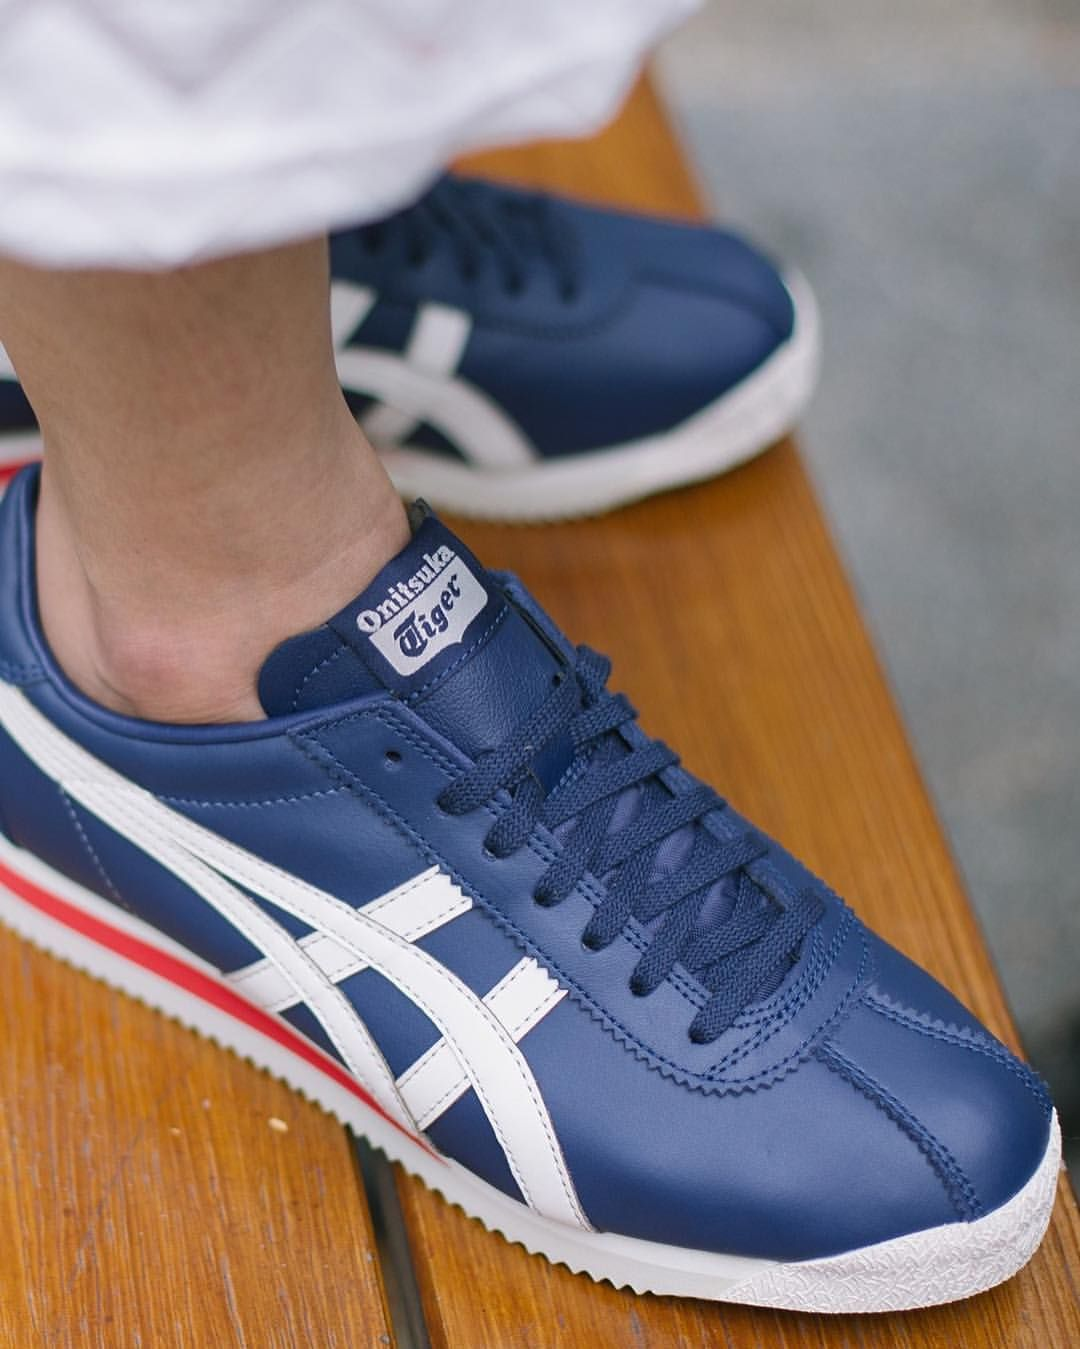 hot sale online 56adb 1c389 Onitsuka Tiger Corsair | shoes | Tiger shoes, Sports ...